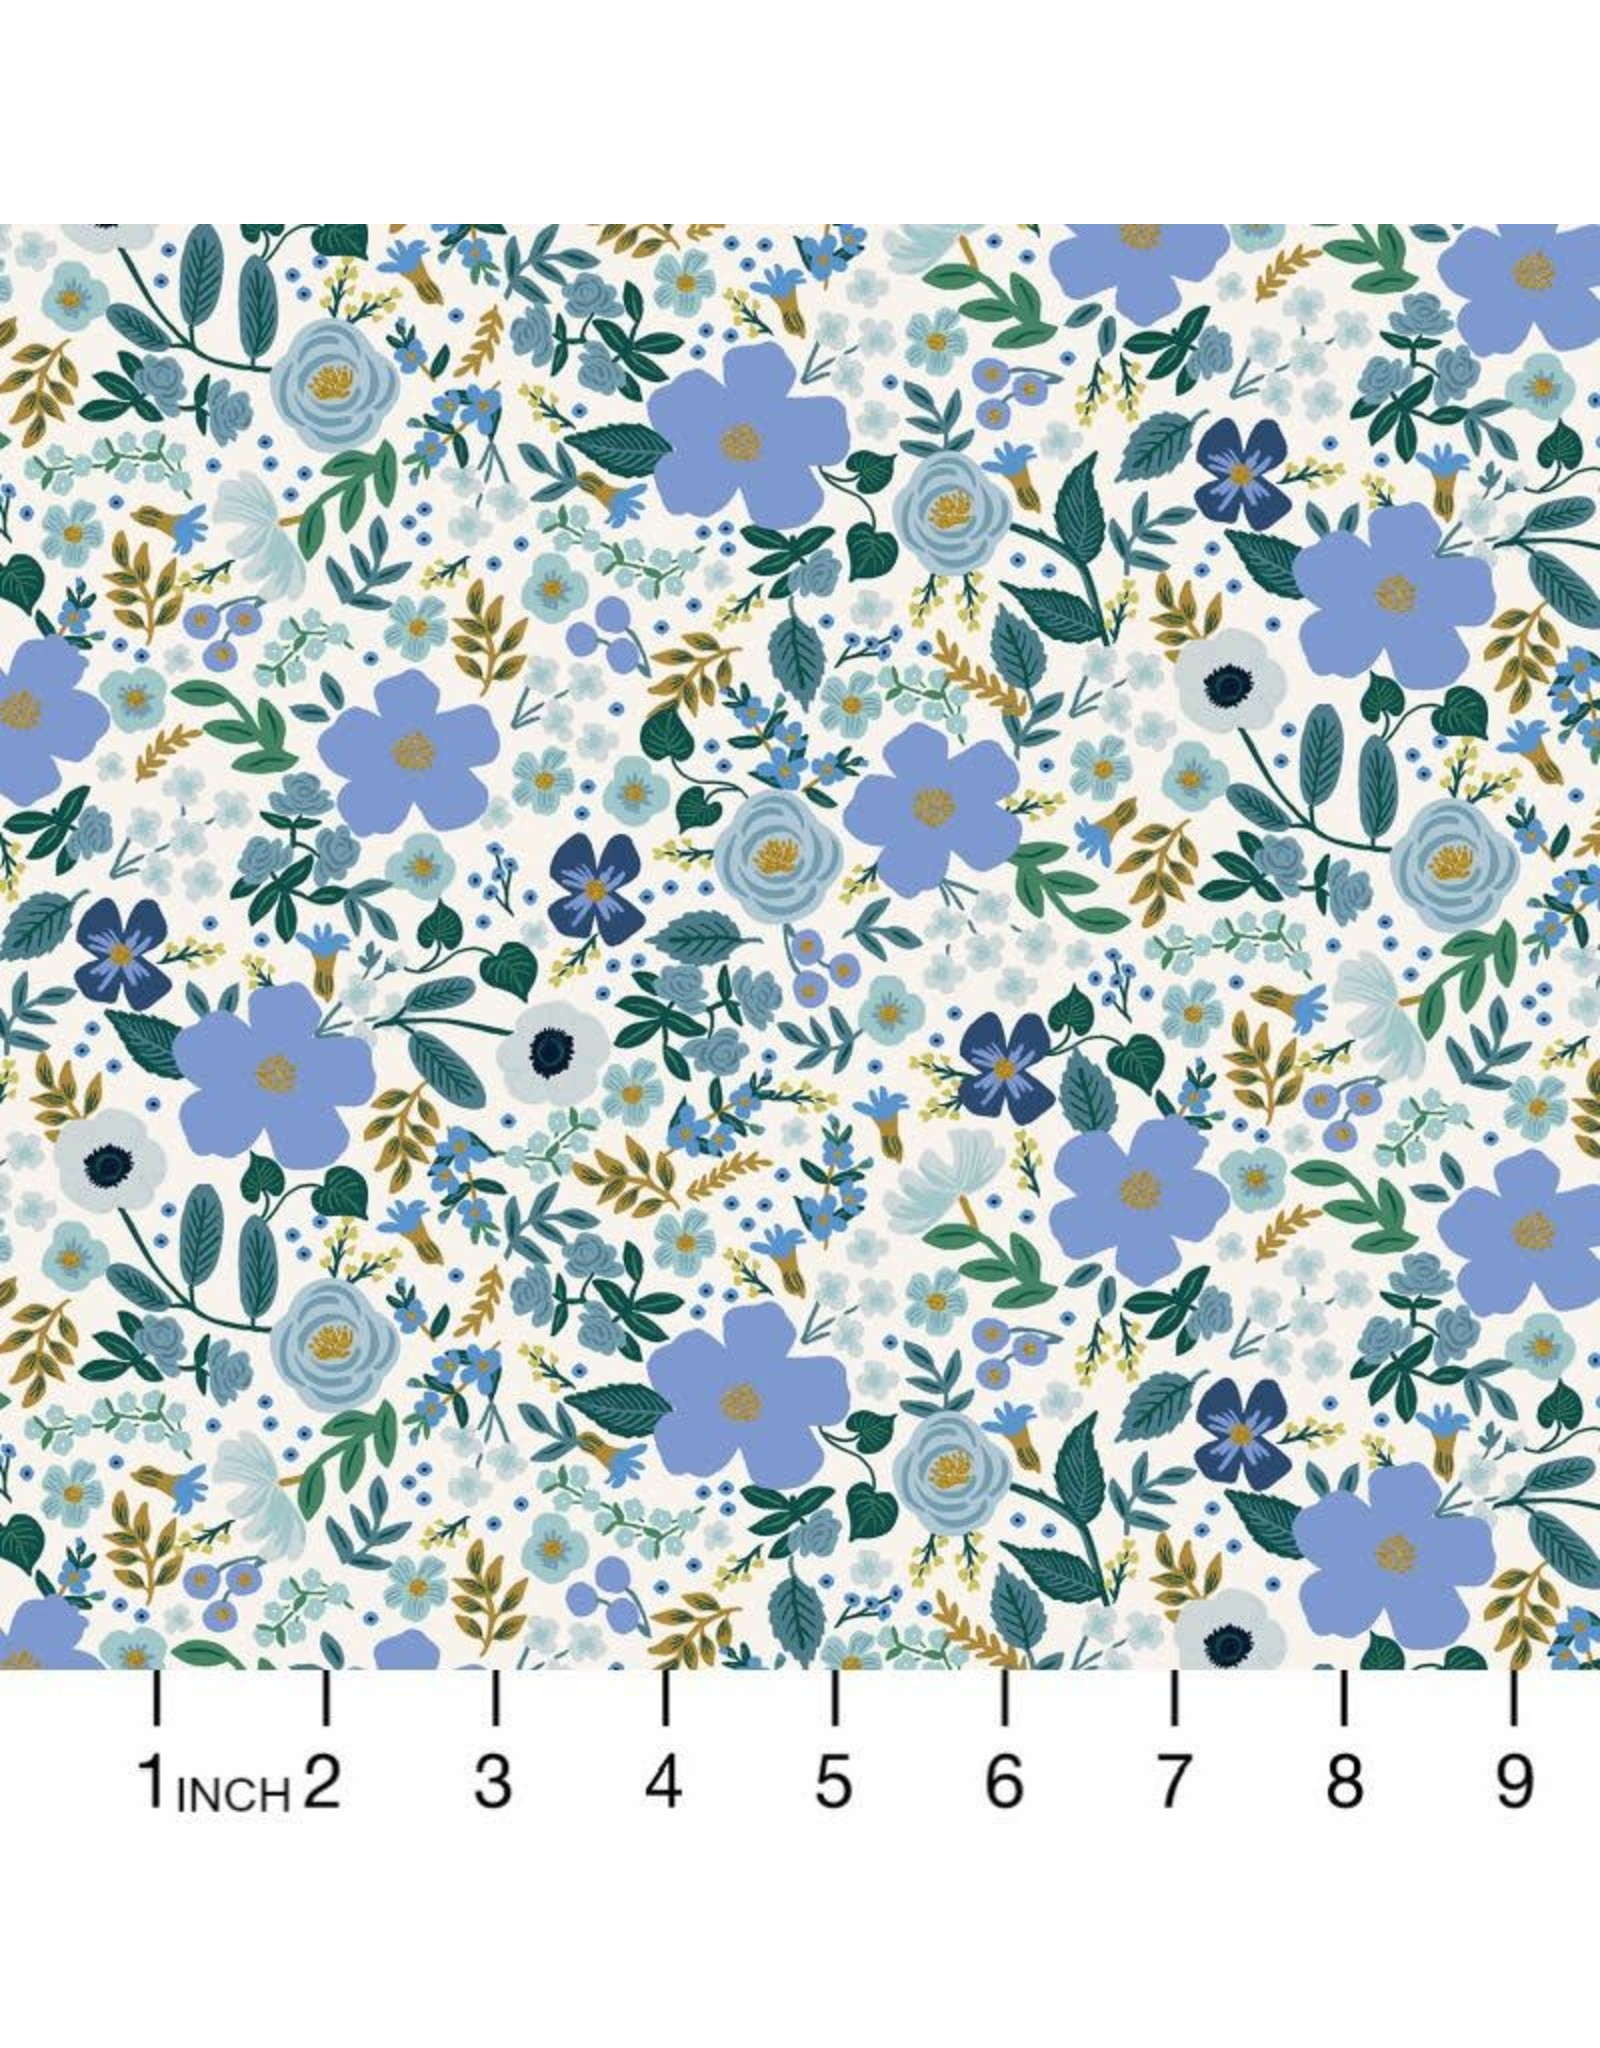 Rifle Paper Co. Garden Party, Wild Rose in Blue with Metallic, Fabric Half-Yards RP303-BL6M